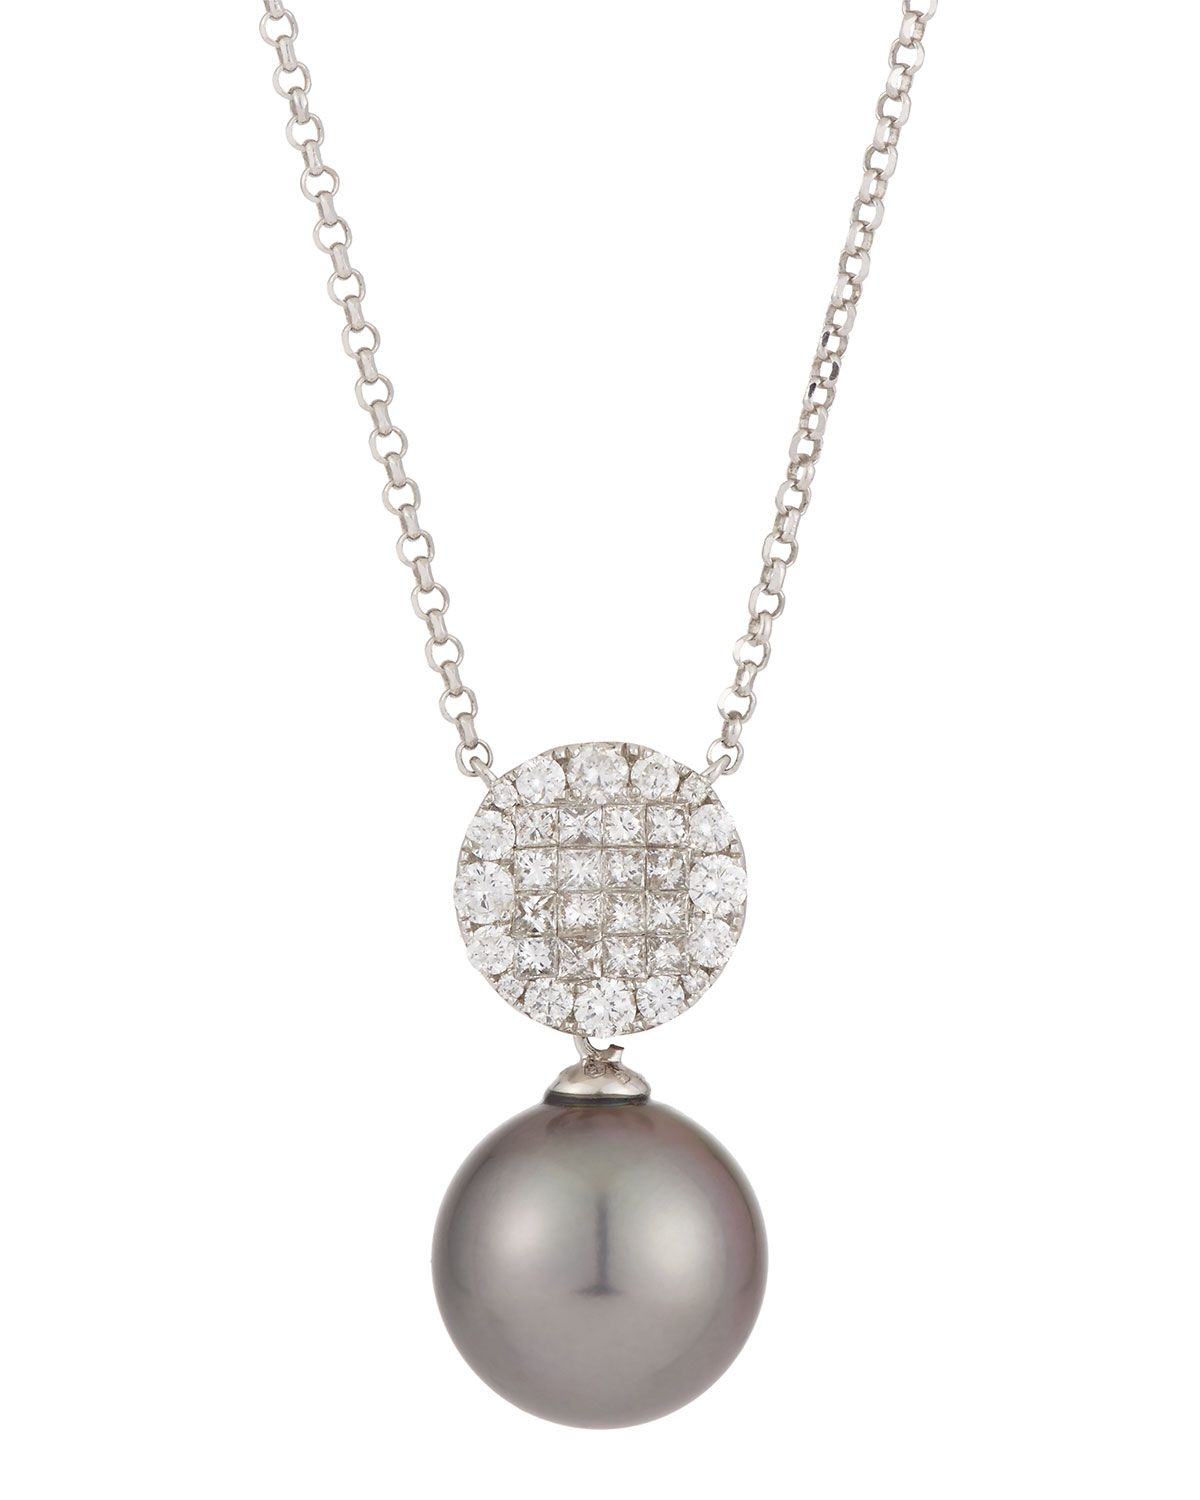 Belpearl 18k White Gold Stationary Tahitian Black Pearl Pendant Necklace w/ Mixed-Cut Diamonds jkRxS6aD